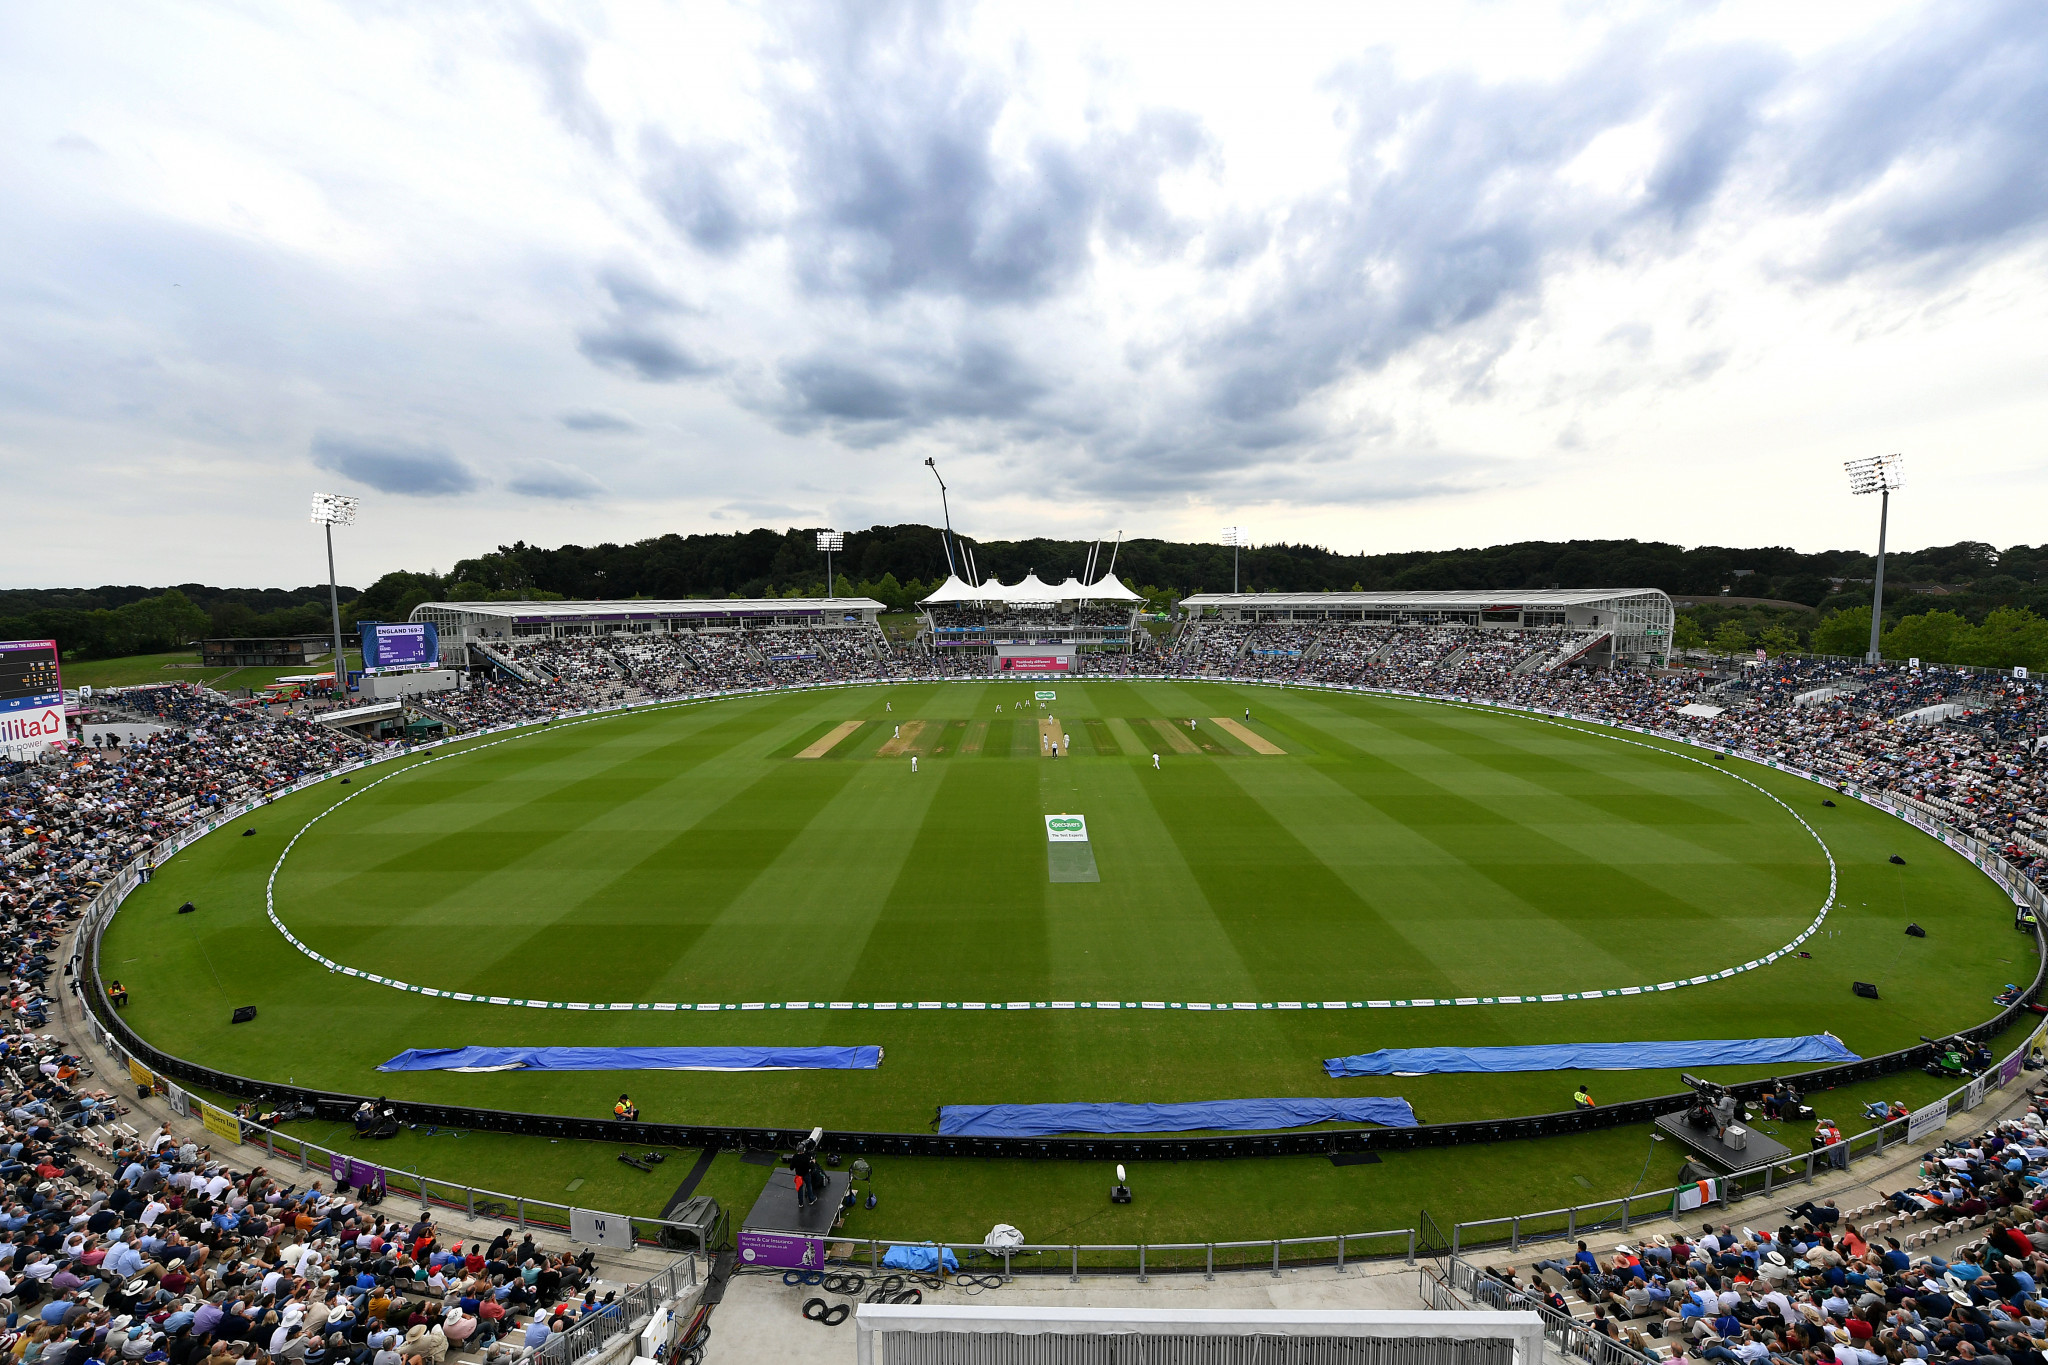 The Hampshire Bowl in Southampton is set to host the World Test Championship Final in a  bio-secure environment ©Getty Images